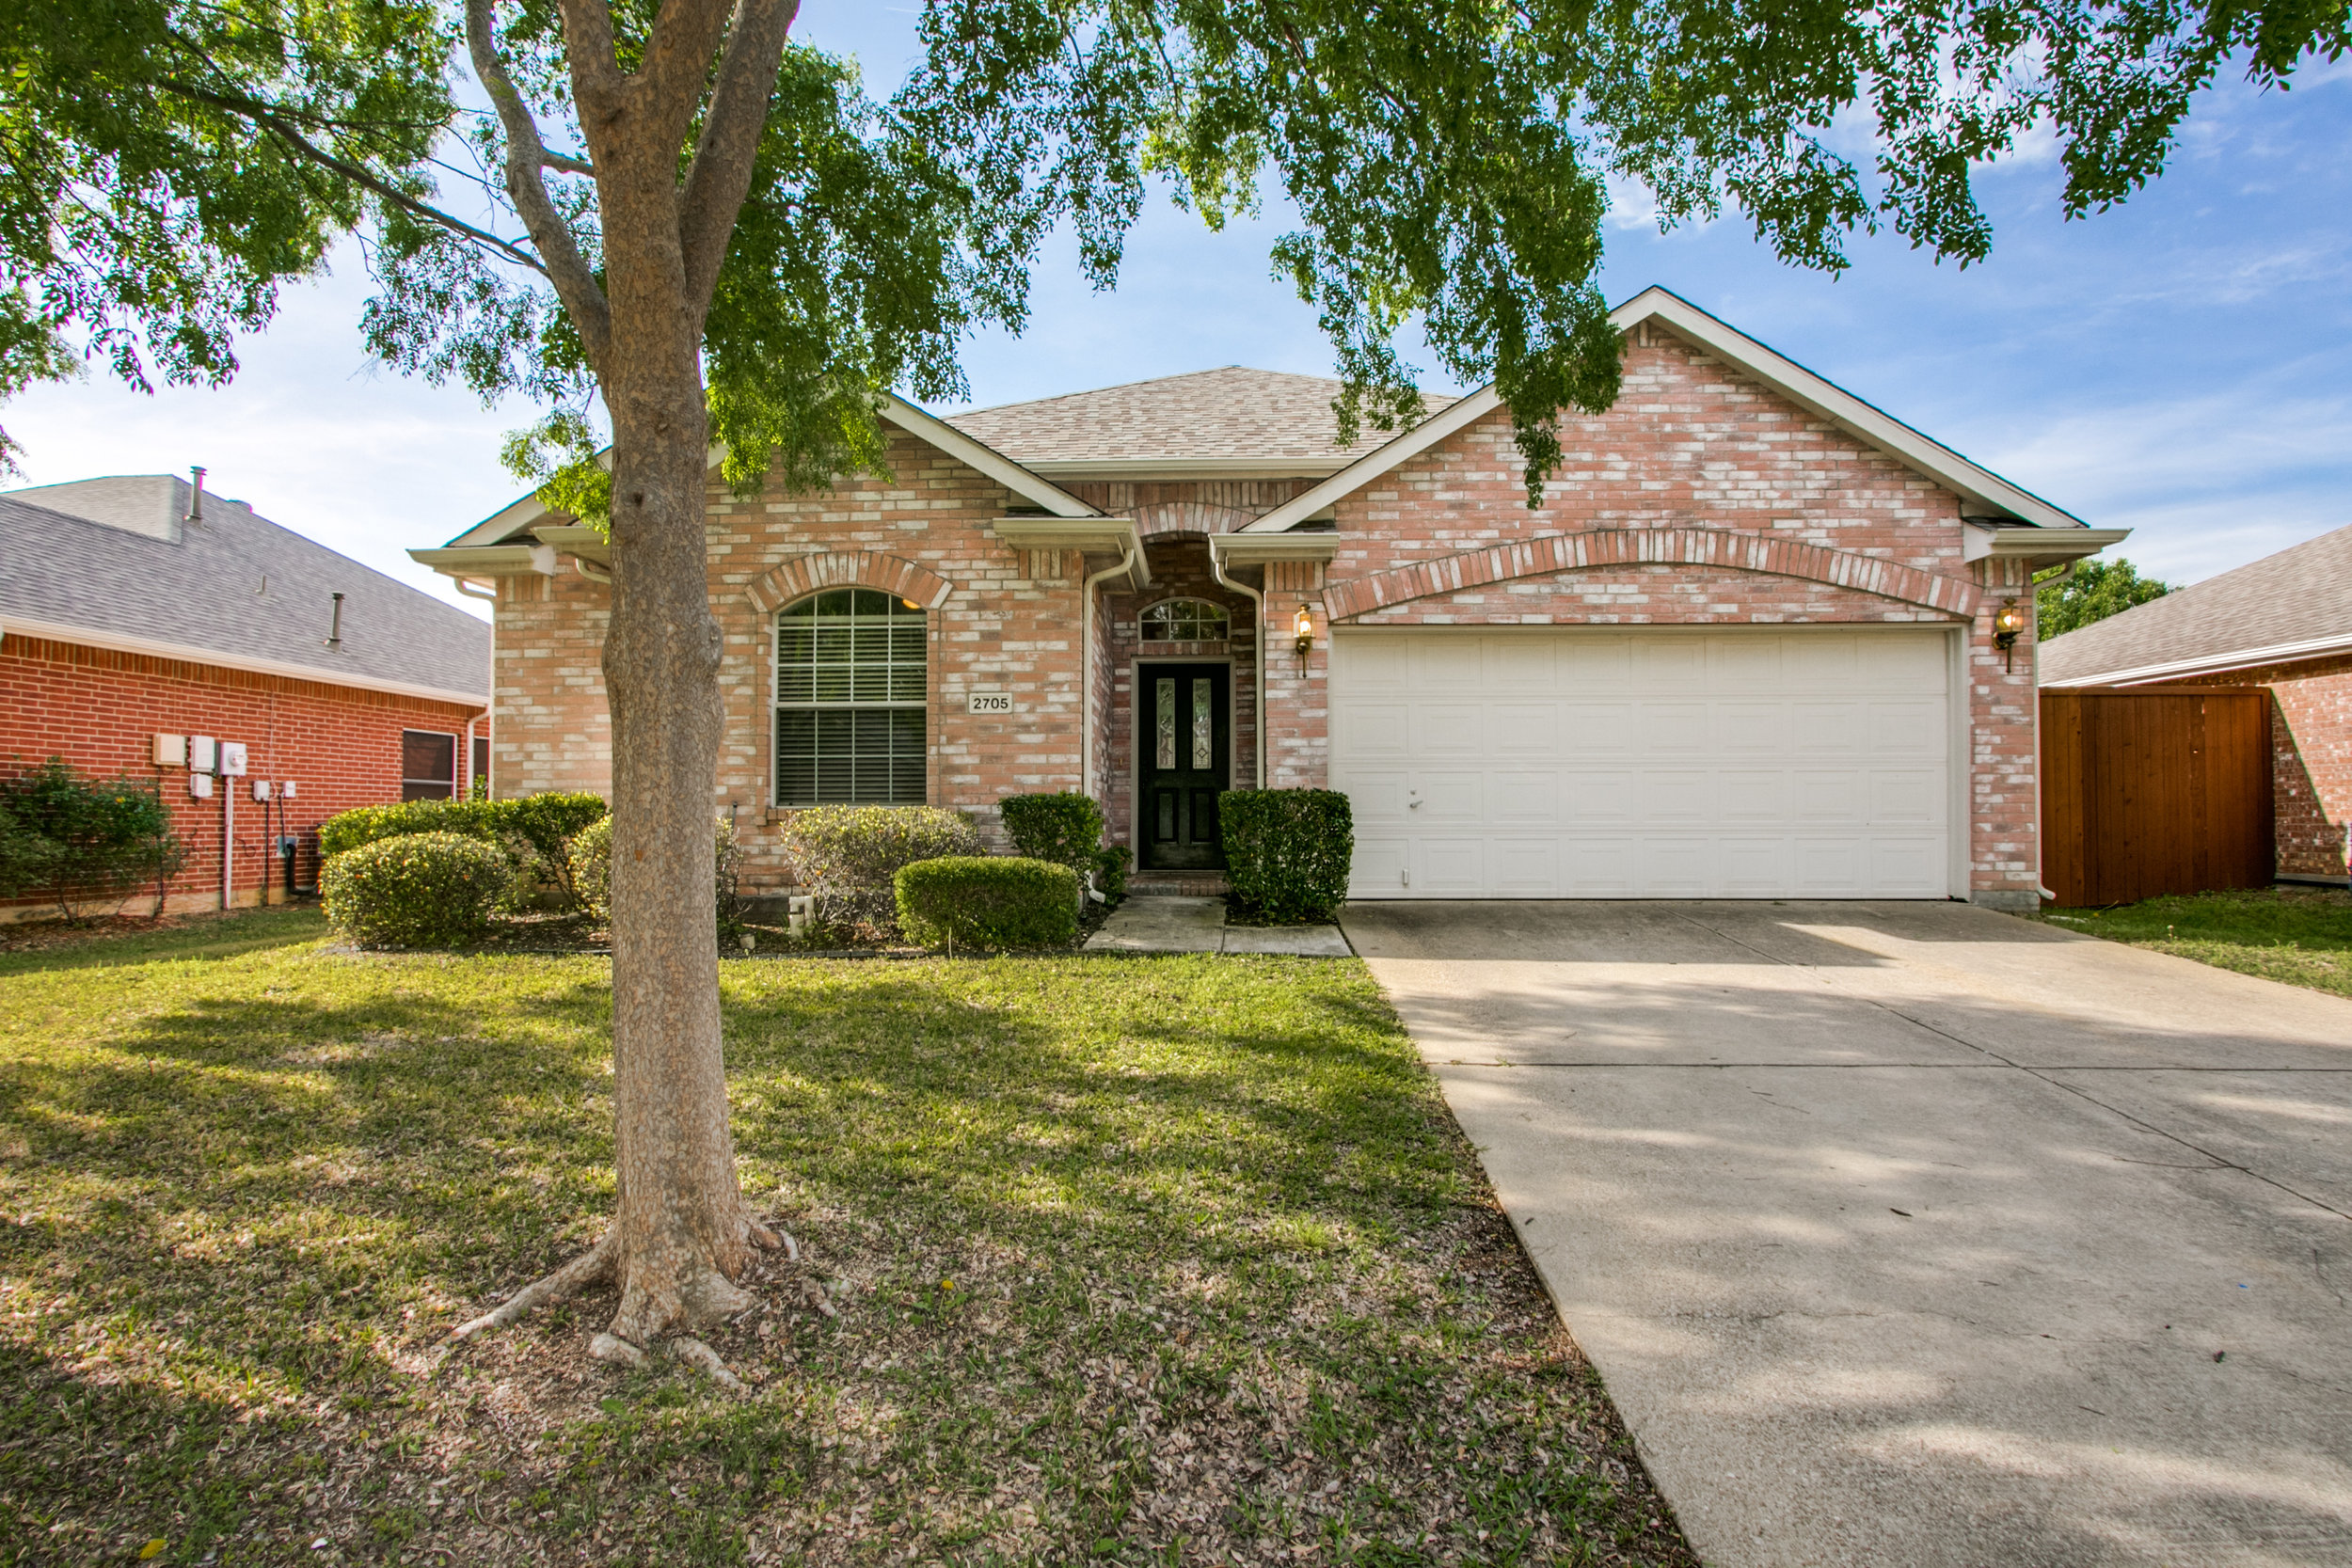 Recently Sold! |  2705 Timberline Drive - Flower Mound